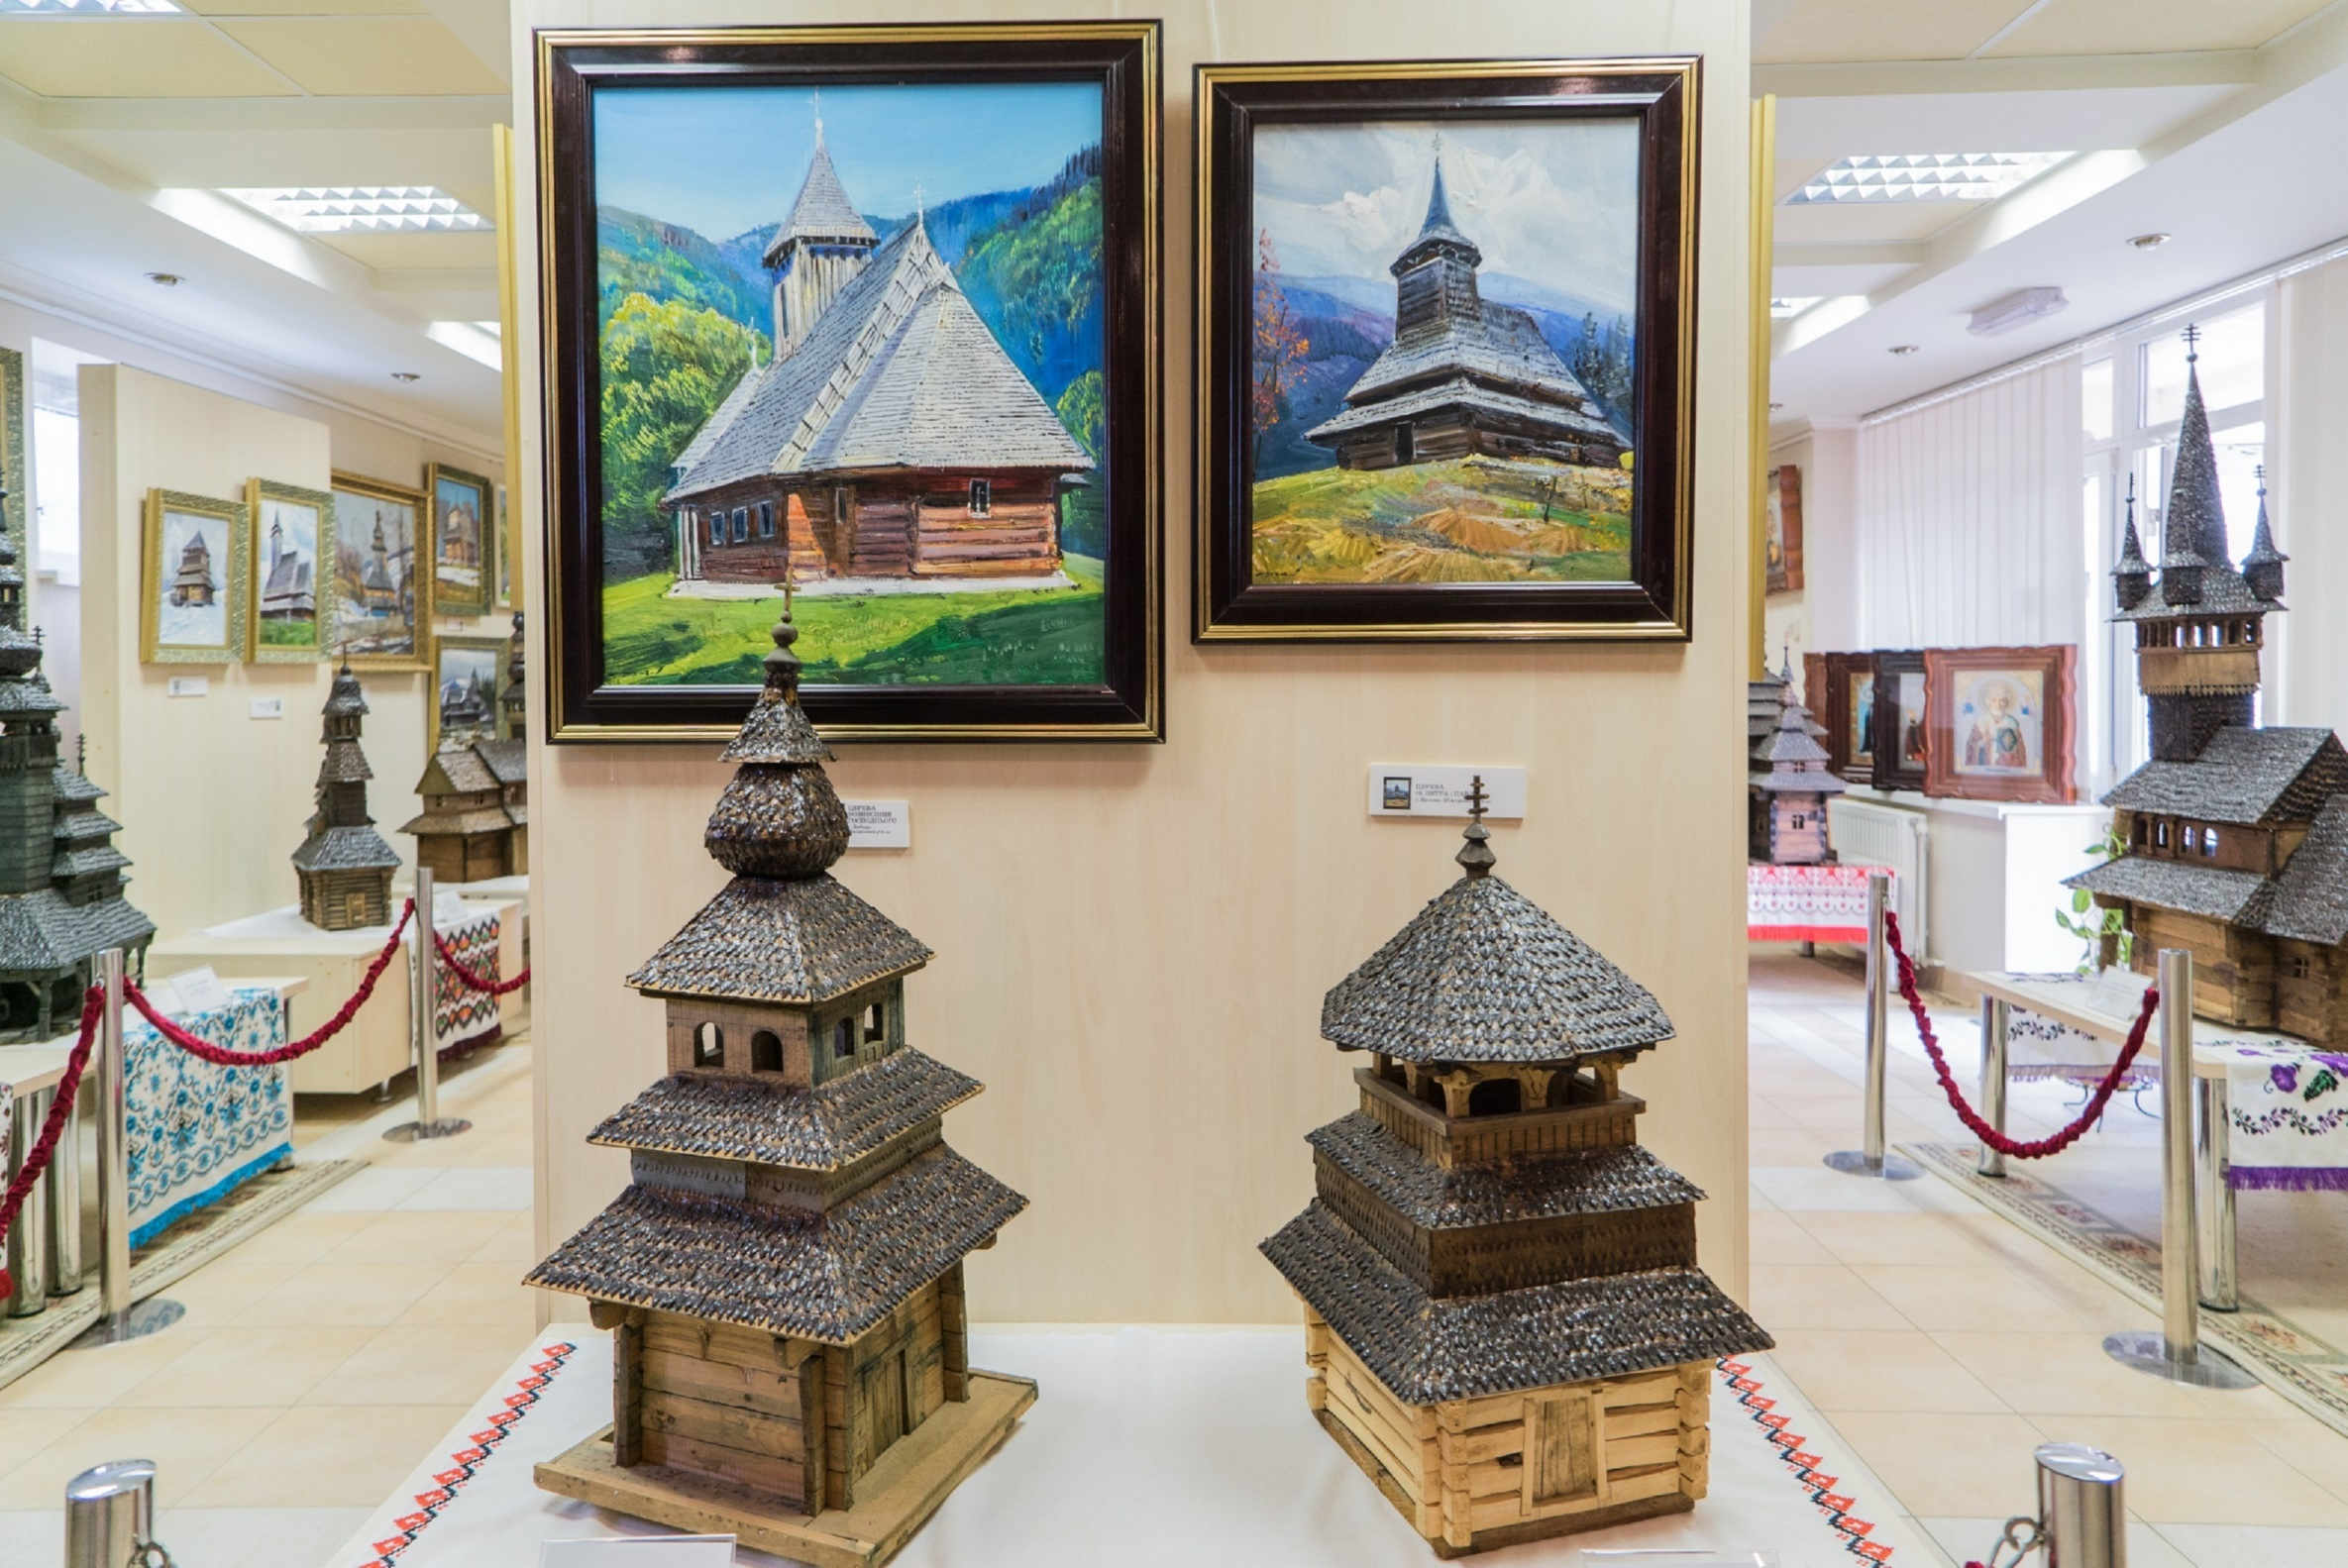 Museums of Transcarpathian region: a selection of sites